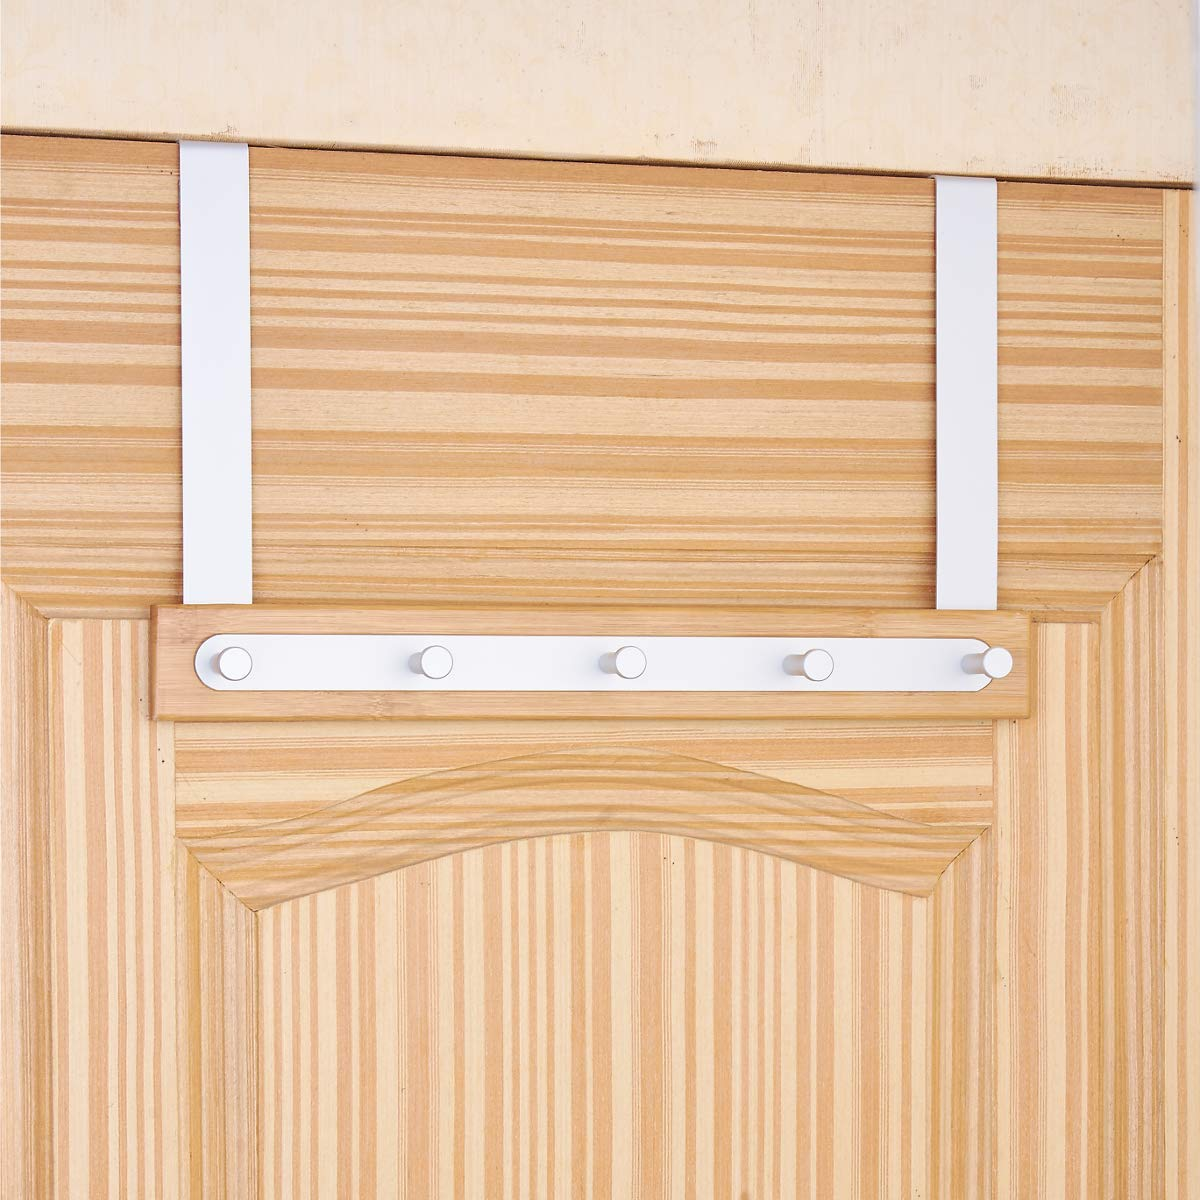 KeepTpeeK Over The Door Hook Hanger Organizer for Coats, Hoodies, Hats, Scarves, Purses, Leashes, Bath Towels & Robes Men and Women Clothing Rack 5 Hooks (Silver)